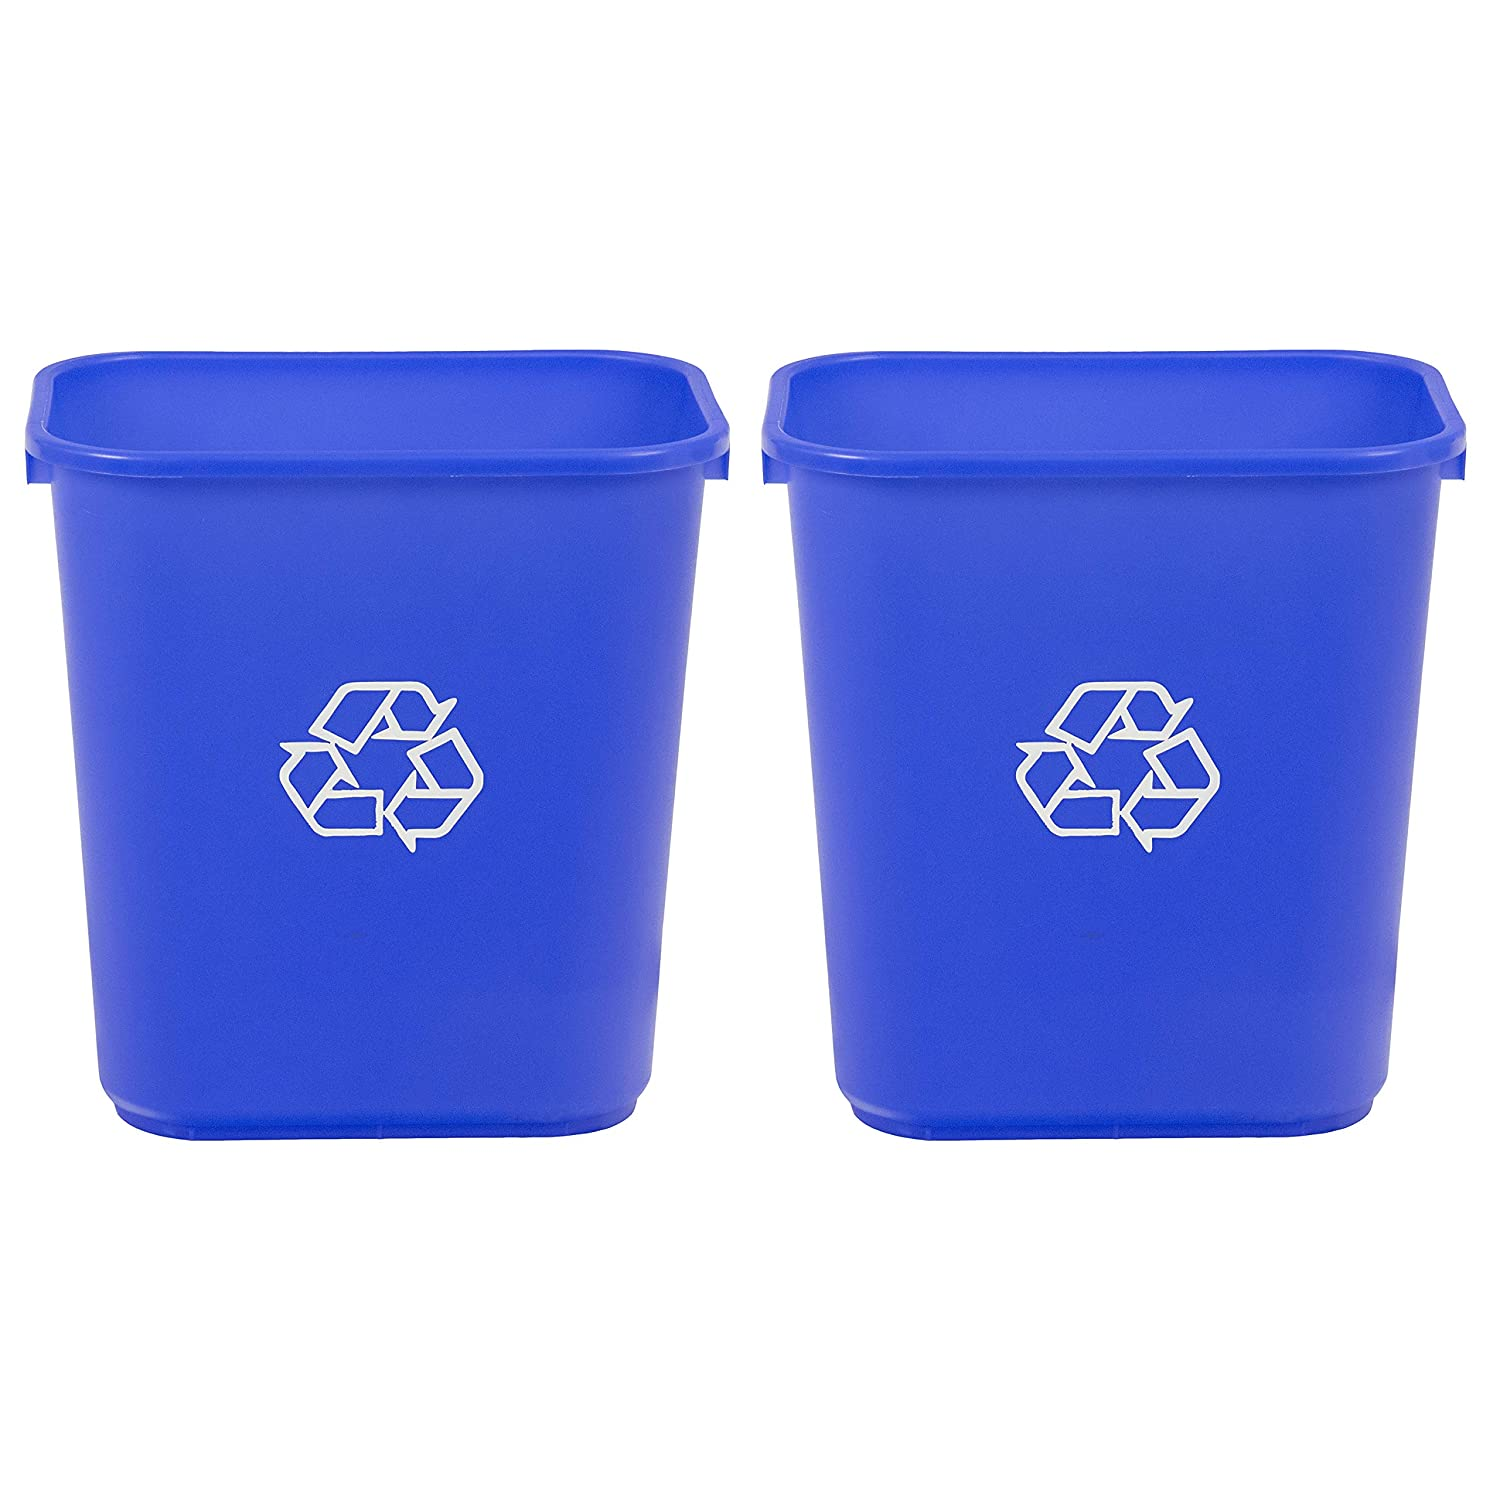 AmazonCommercial 7 Gallon Commercial Office Wastebasket, Blue w/Recycle Logo, 2-Pack